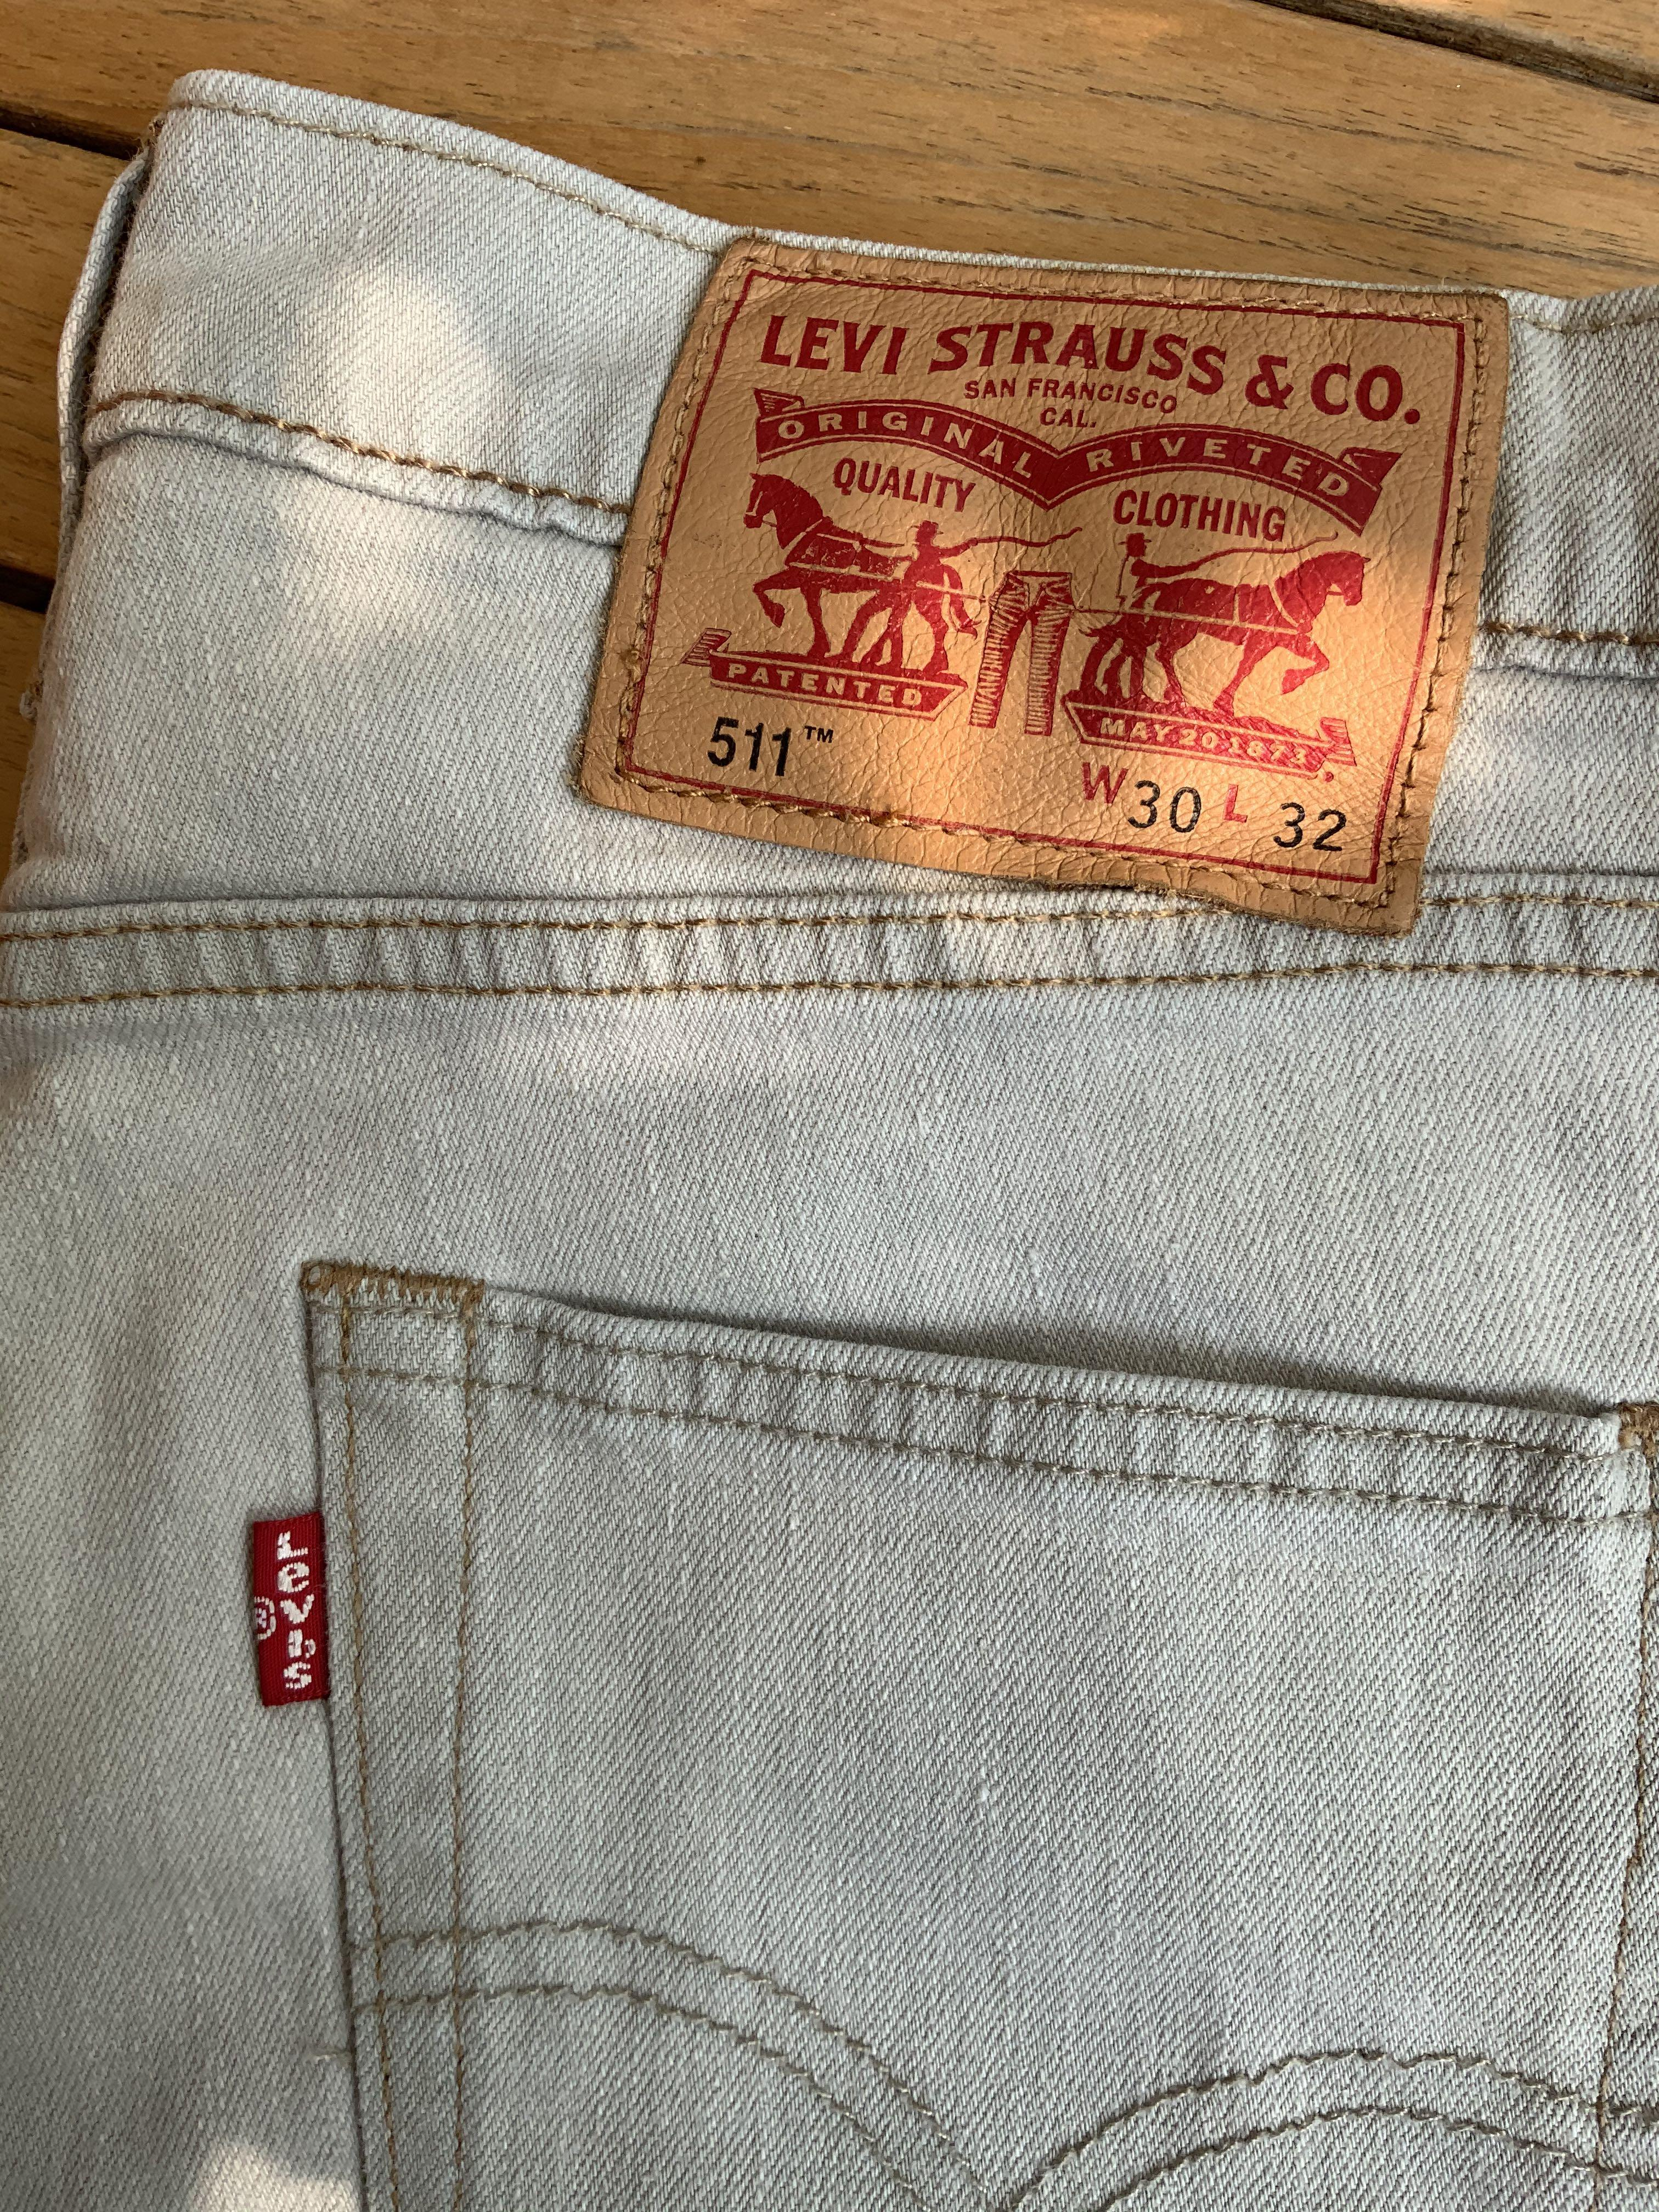 NEW light grey Levi's 511 jeans(waist 30/length 32)